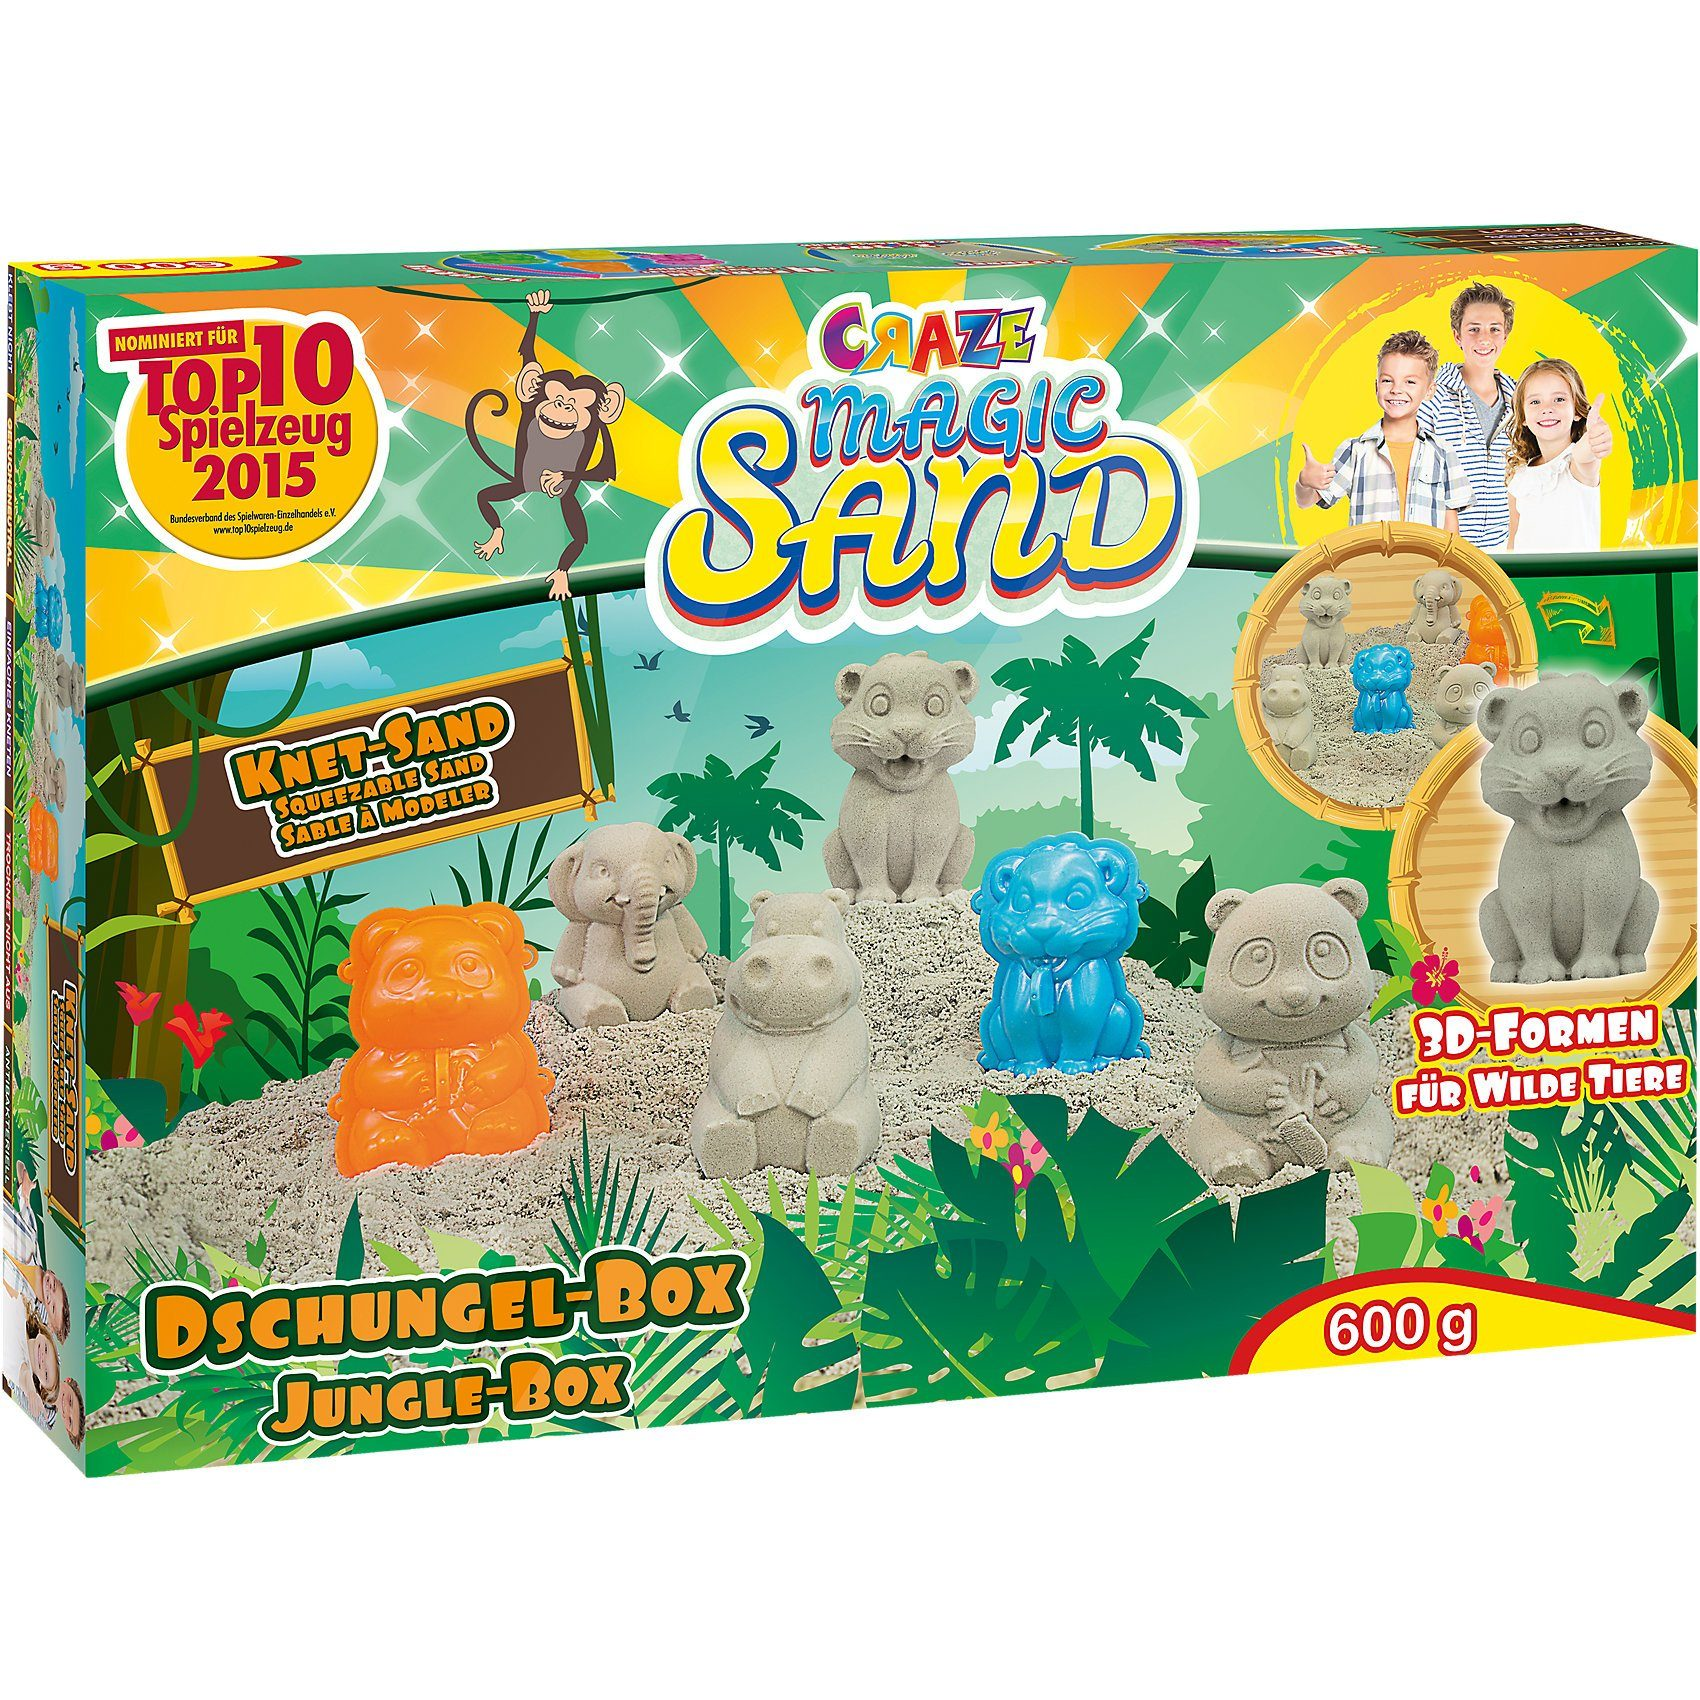 CRAZE Magic Sand Dschungel-Box